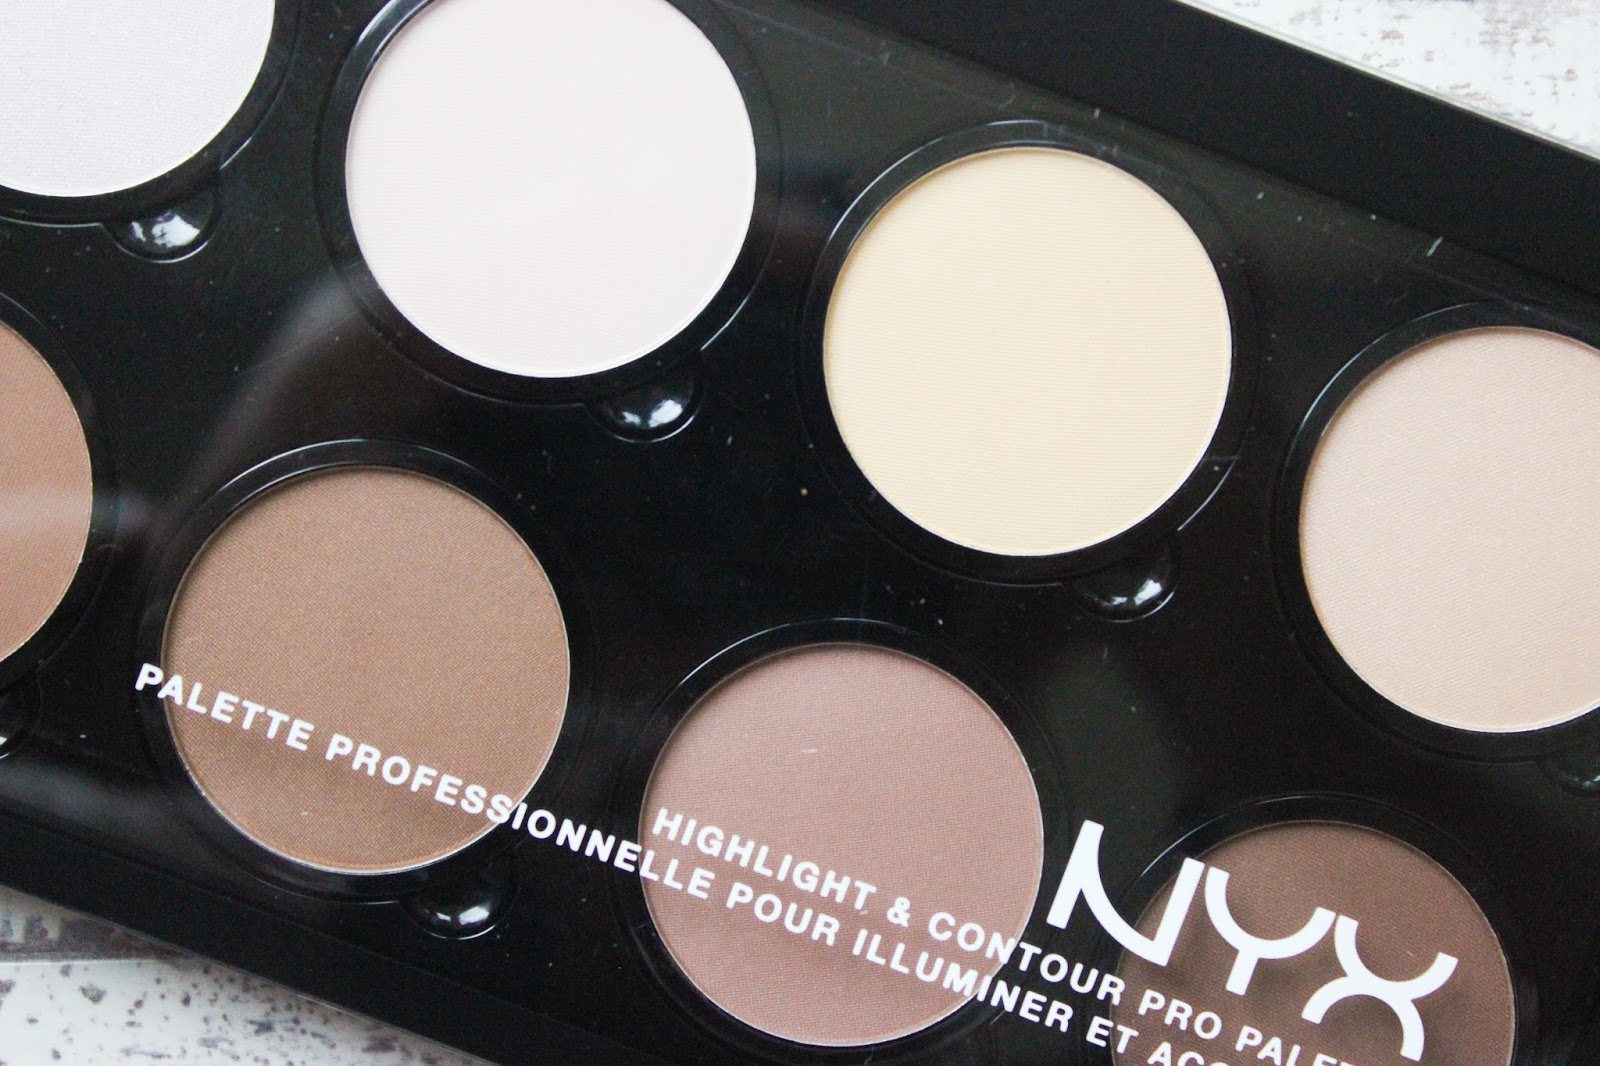 NYX HIGHLIGHT & CONTOUR PRO PALETTE SWATCHES DARK SKIN CONTOUR KIT REVIEW NC50 DISCOVERIES OF SELF BLOG NATALIE KAYO BEAUTY